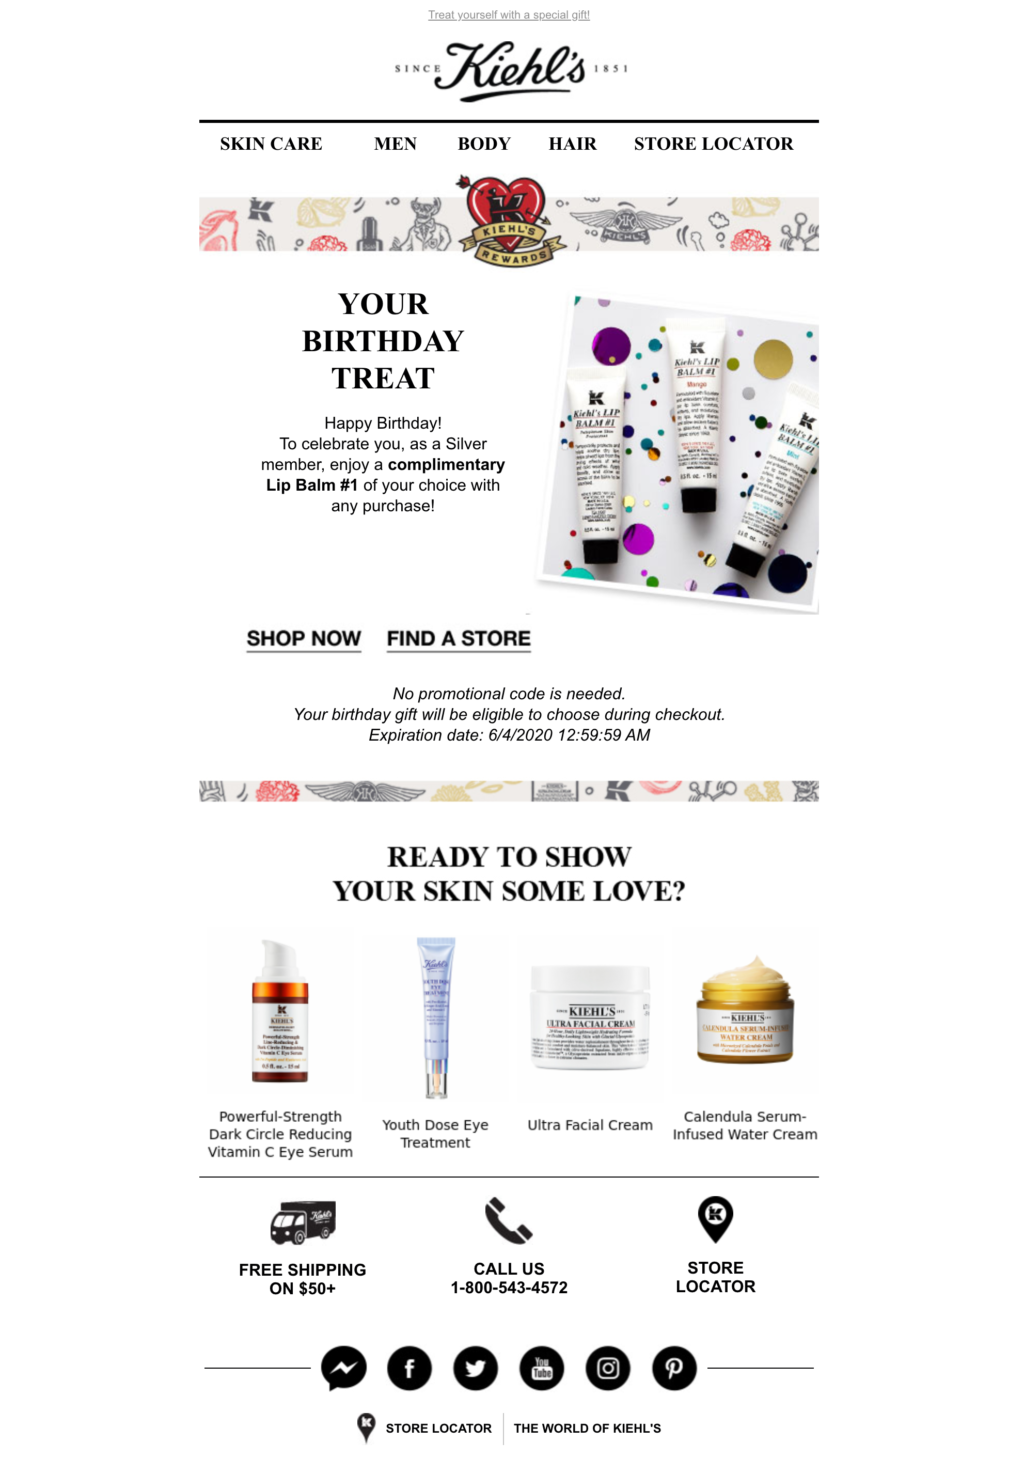 an example of email marketing campaign